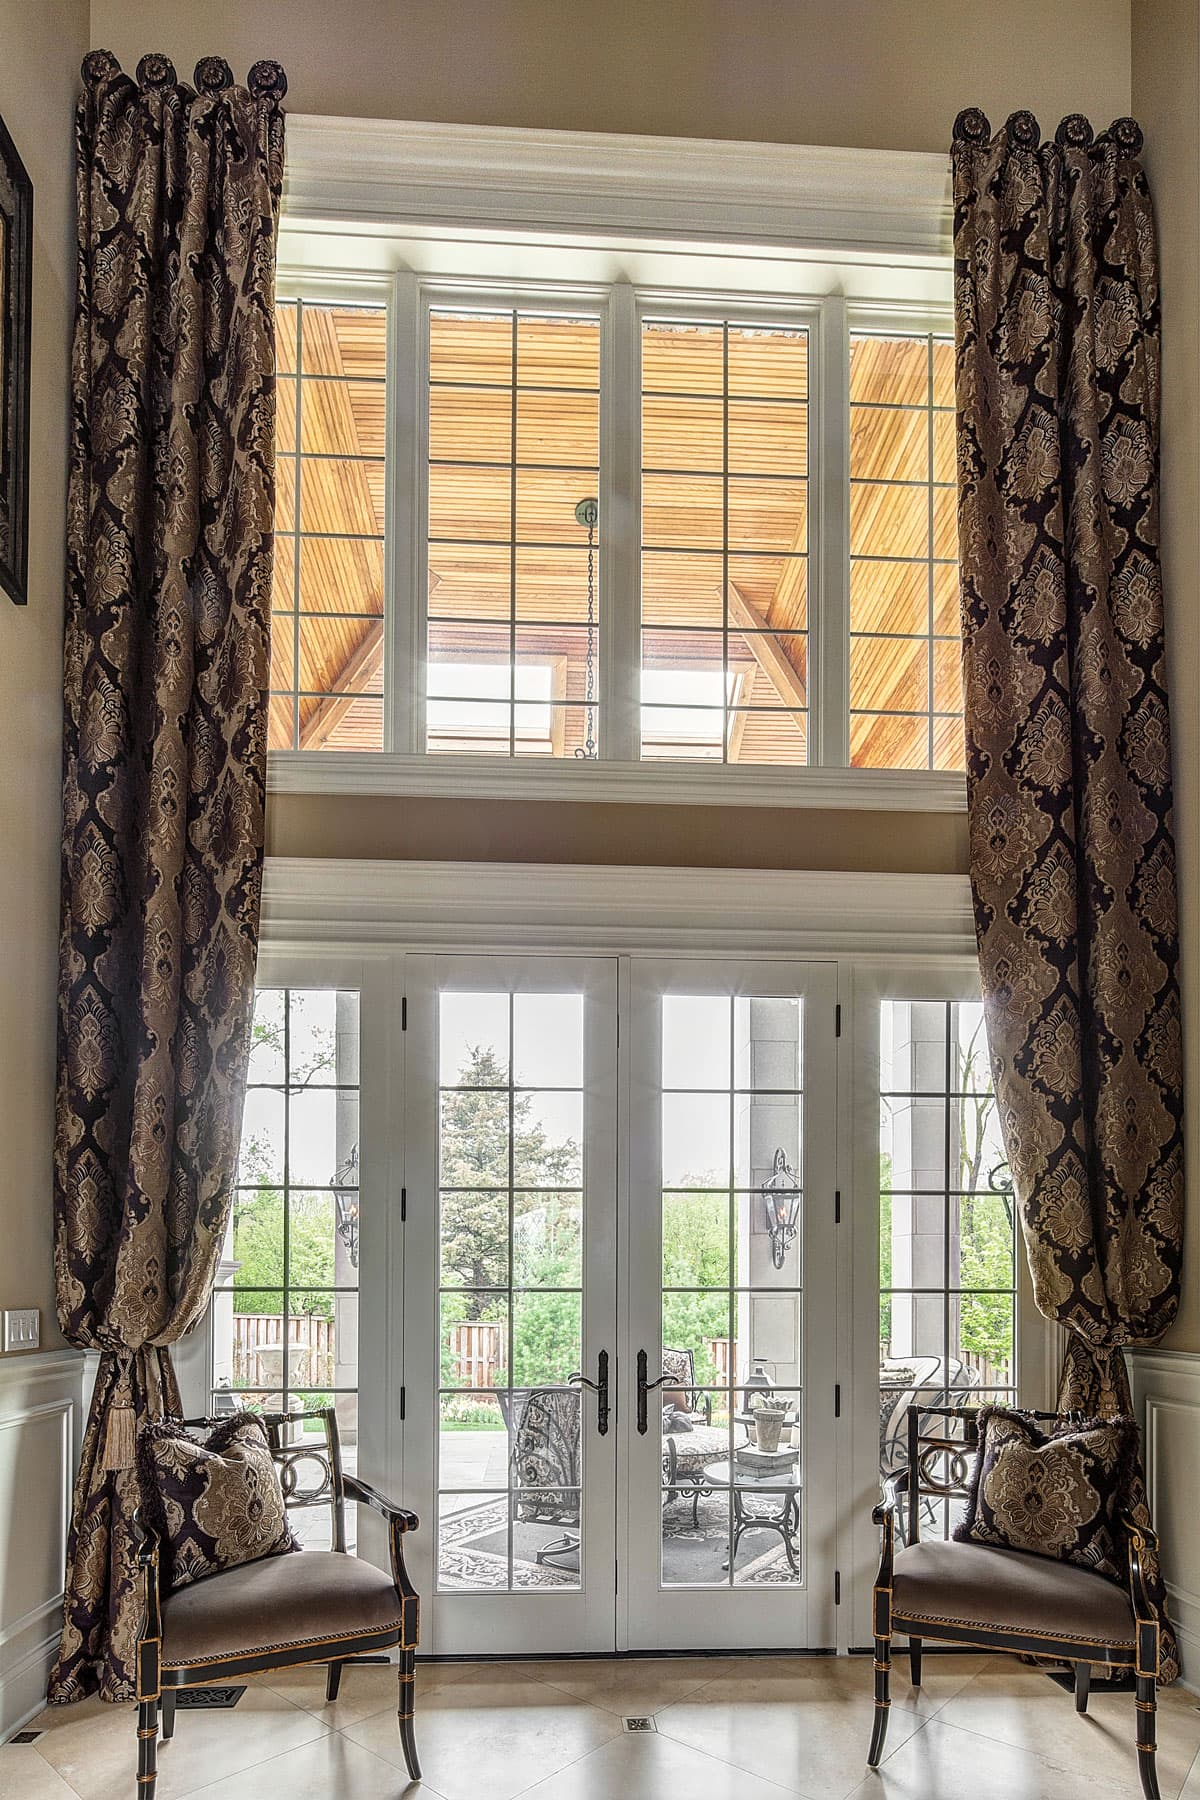 Blinds For Large Foyer Window : Window treatment designs pirouettes allure